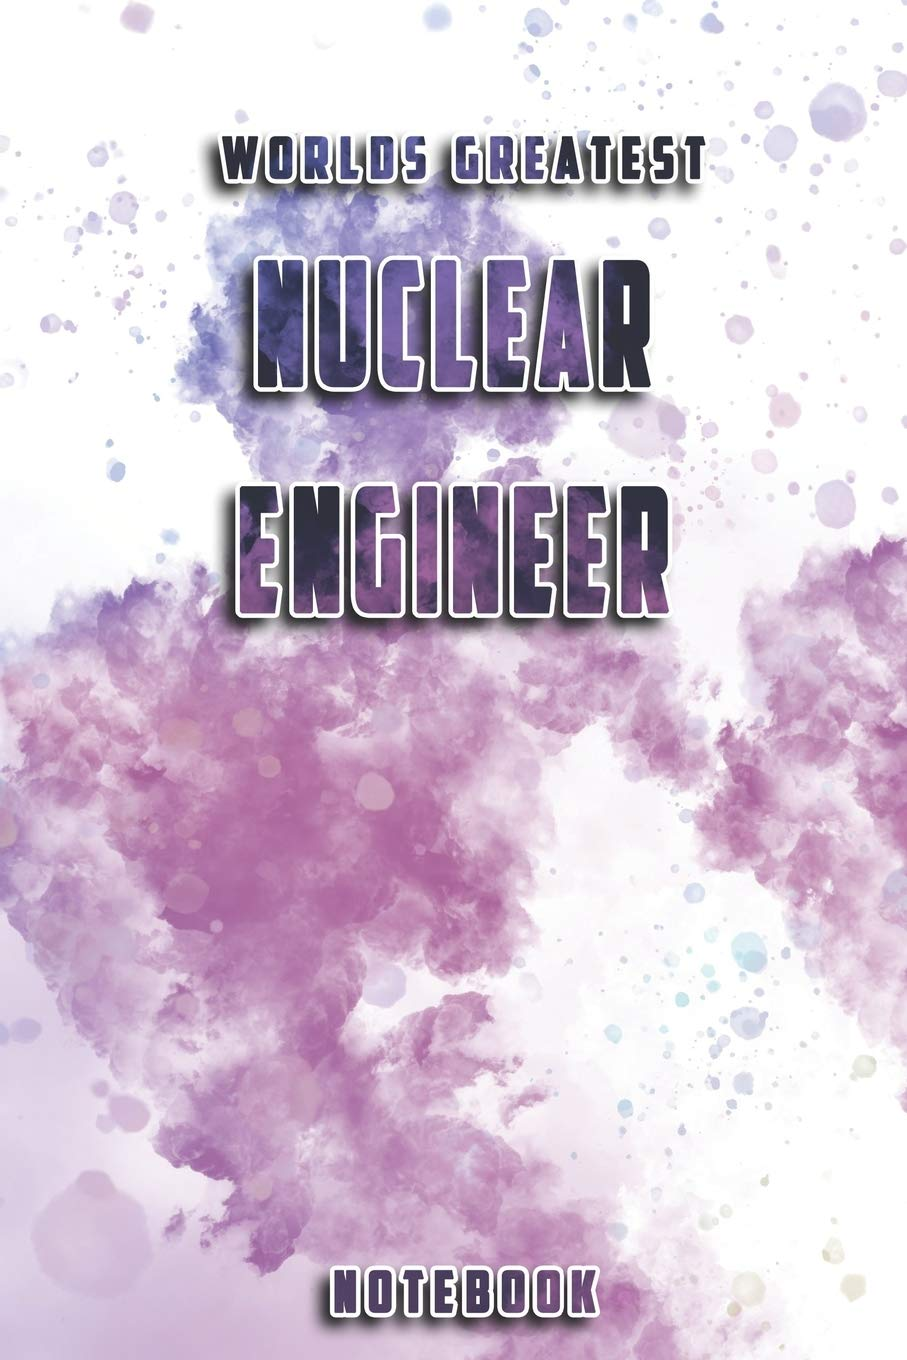 World Greatest Nuclear Engineer Notebook Unique Softcover Design With Individual Job Title Cute Gift For Worker Engineers Or Medicals 6 X 9 Journal Notebook Diary Composition Book Notebooks